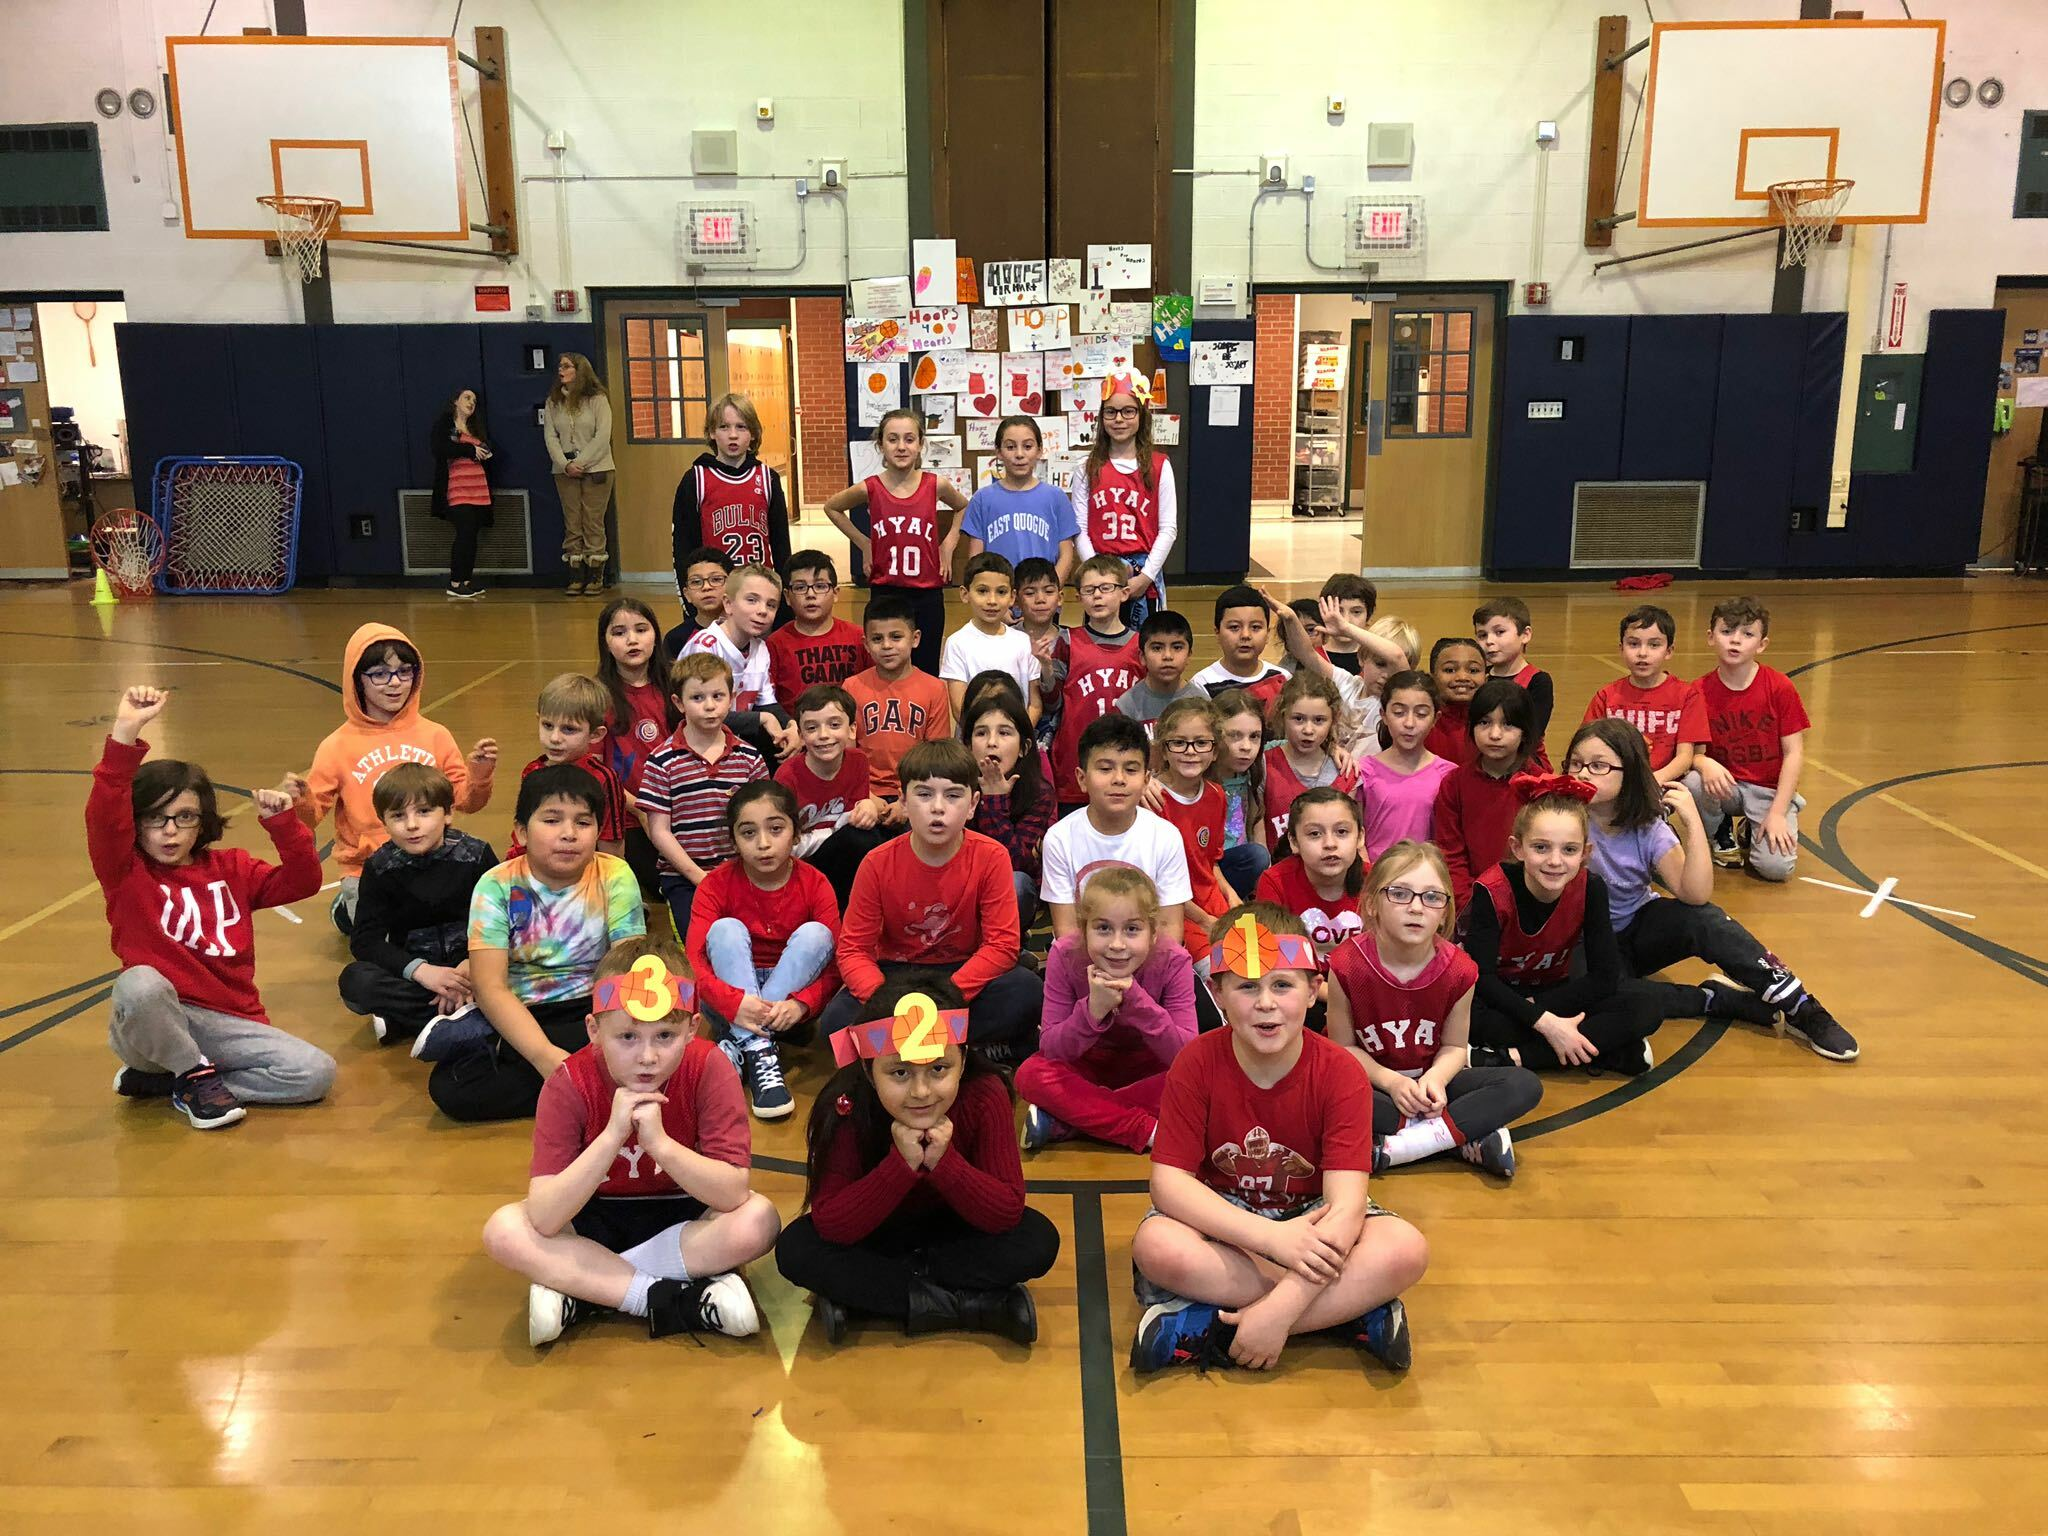 East Quogue Elementary School students recently participated in the Hoops for Heart challenge to benefit the American Heart Association, raising nearly $300.